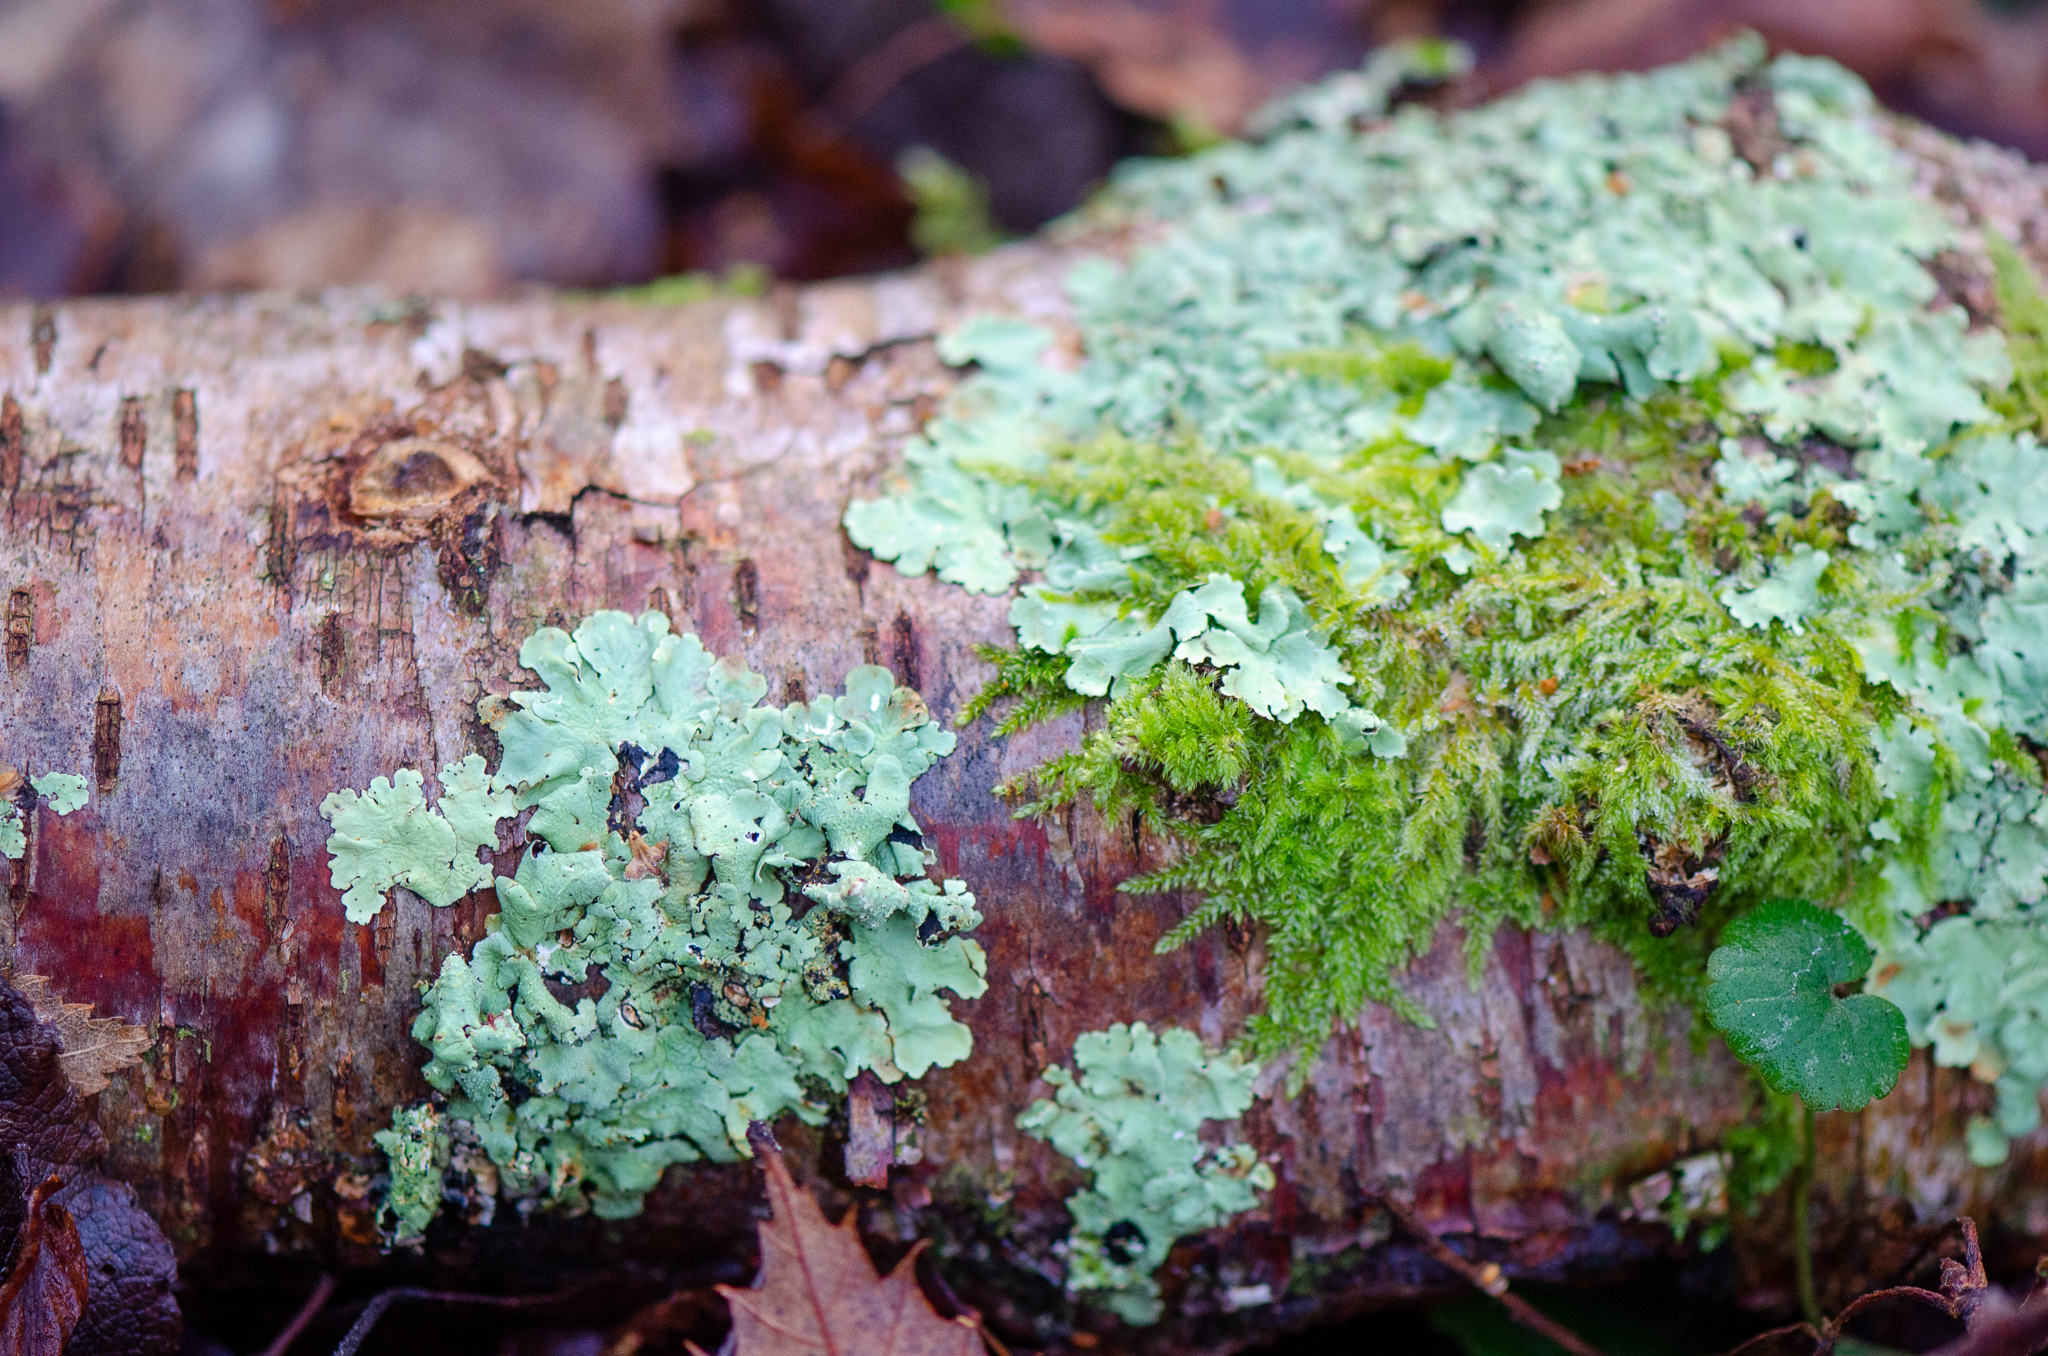 Not strictly fungi, but taken in the same woodland- a fallen trunk with moss and lichen   Nikon D5100- 105mm macro lens- F3-1/320 sec- ISO 800